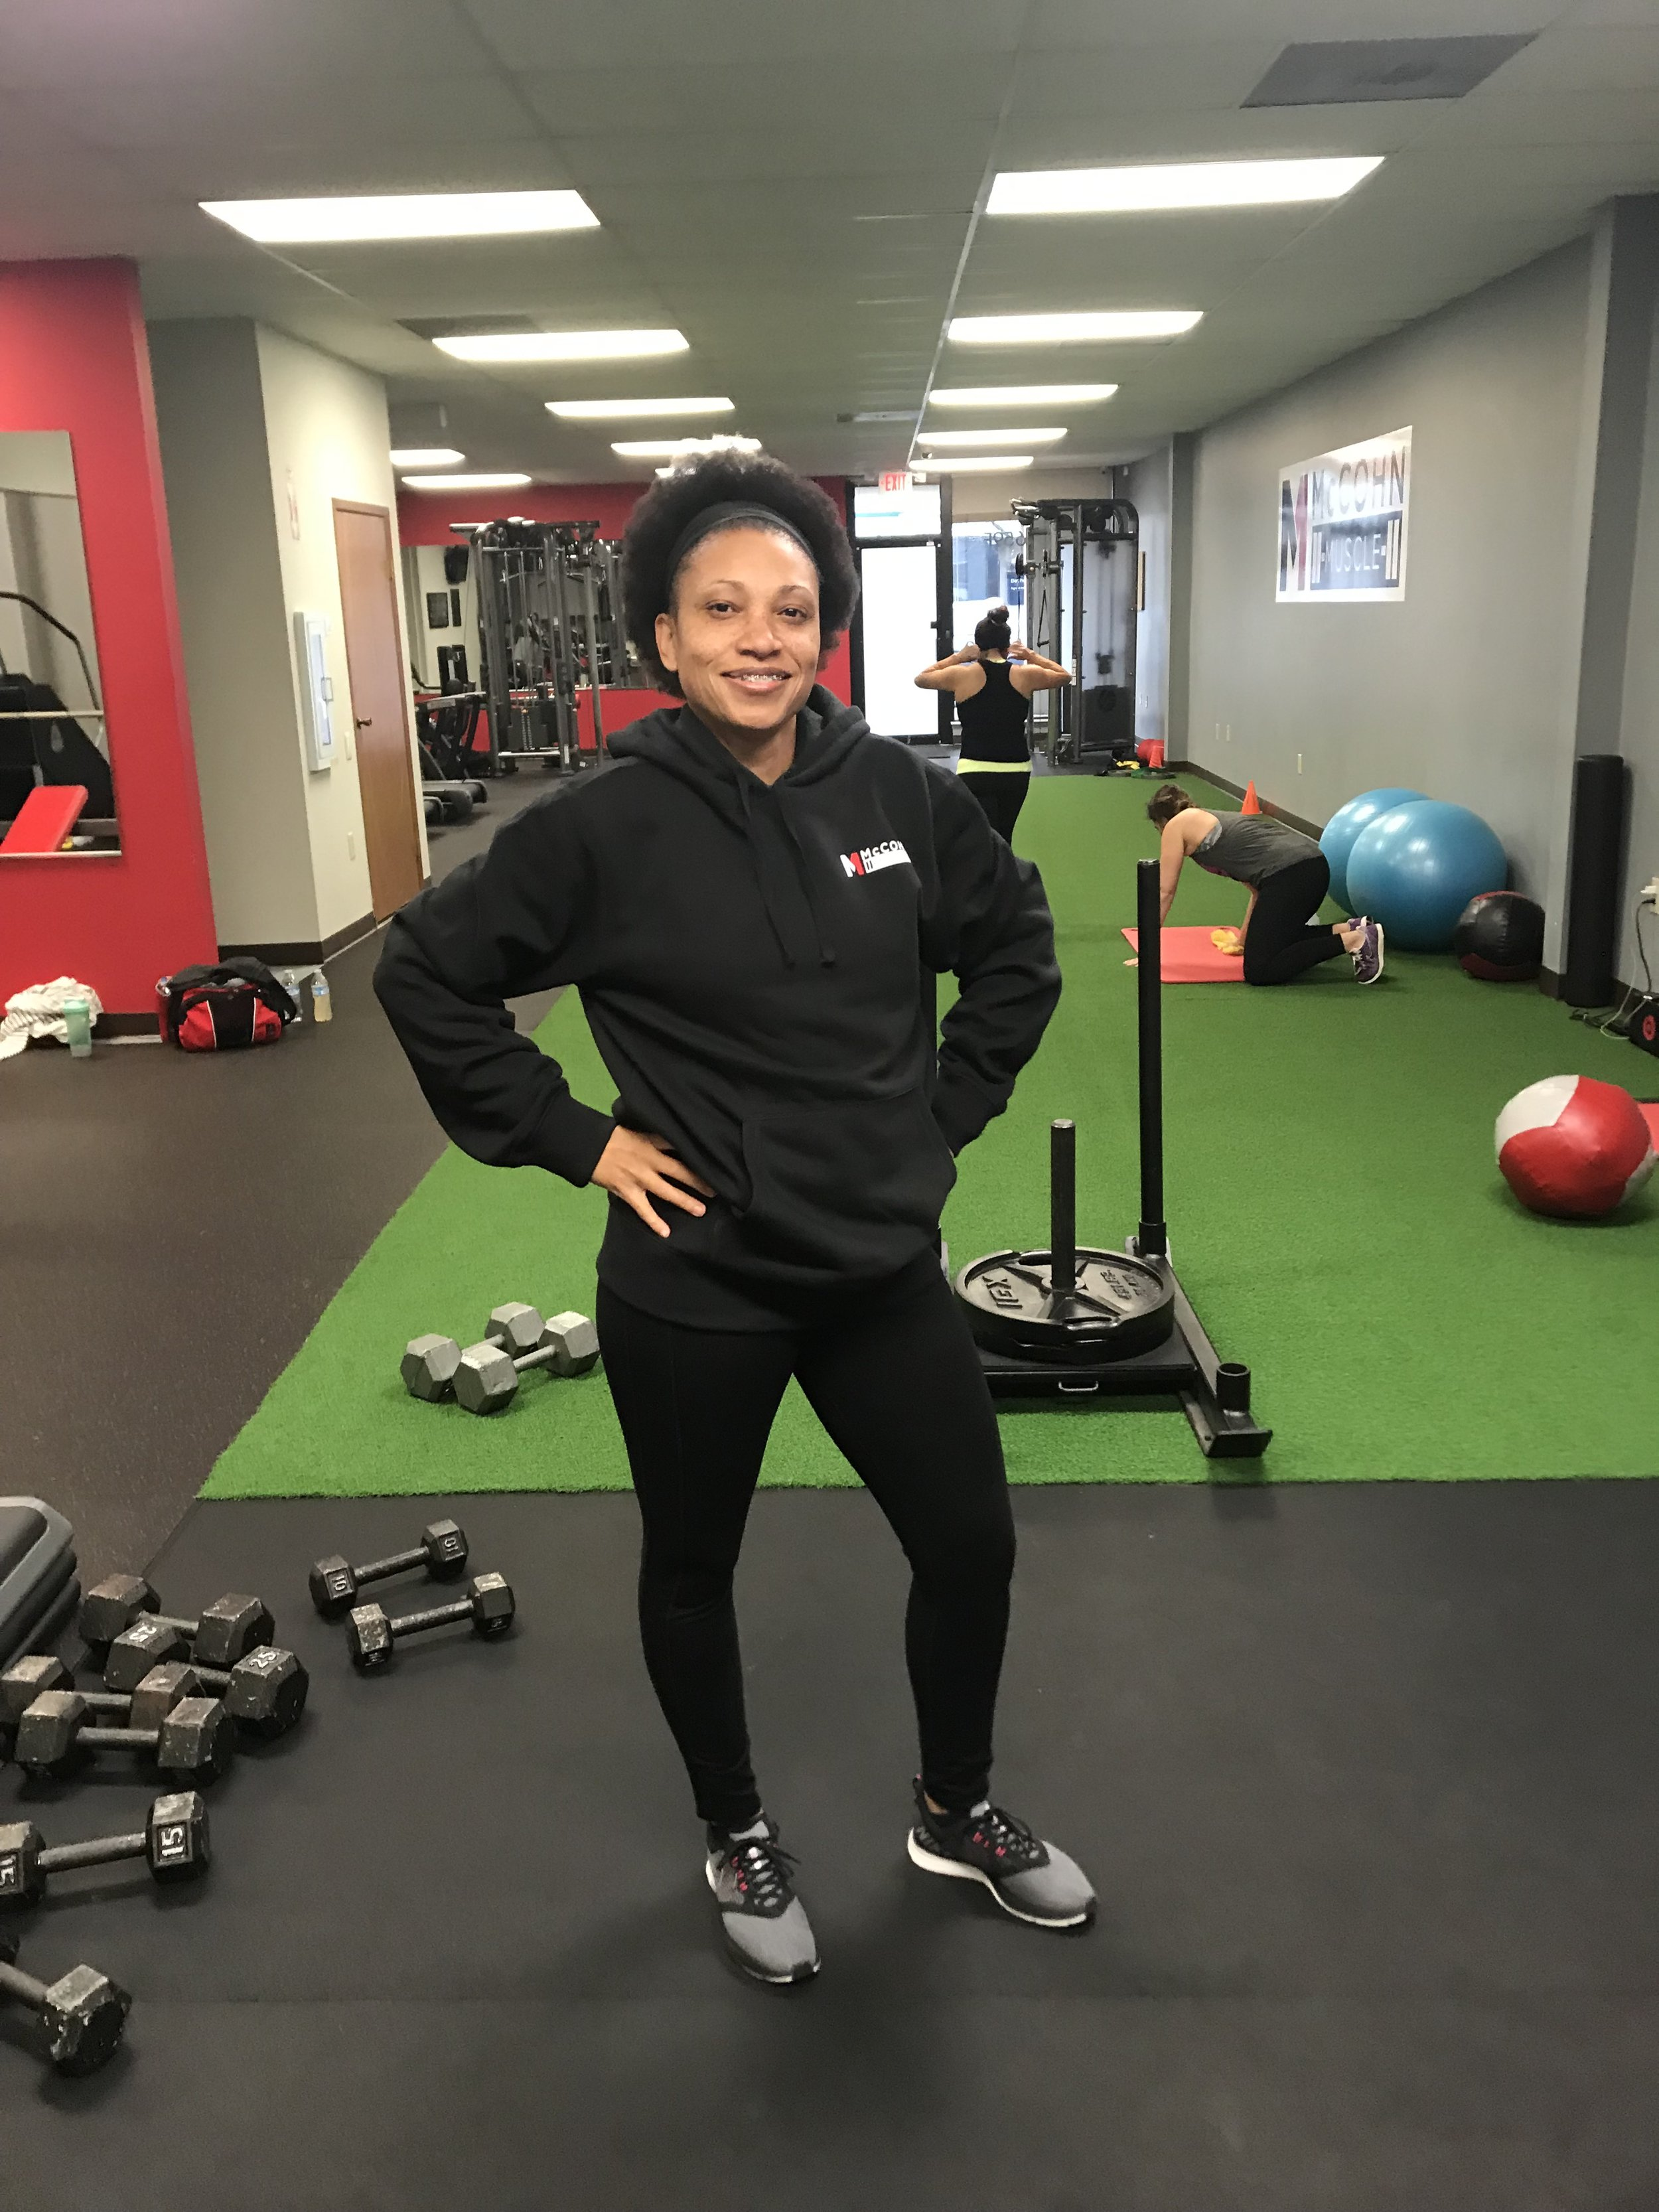 Our Client of the Month for February 2019 is Shamara Page.